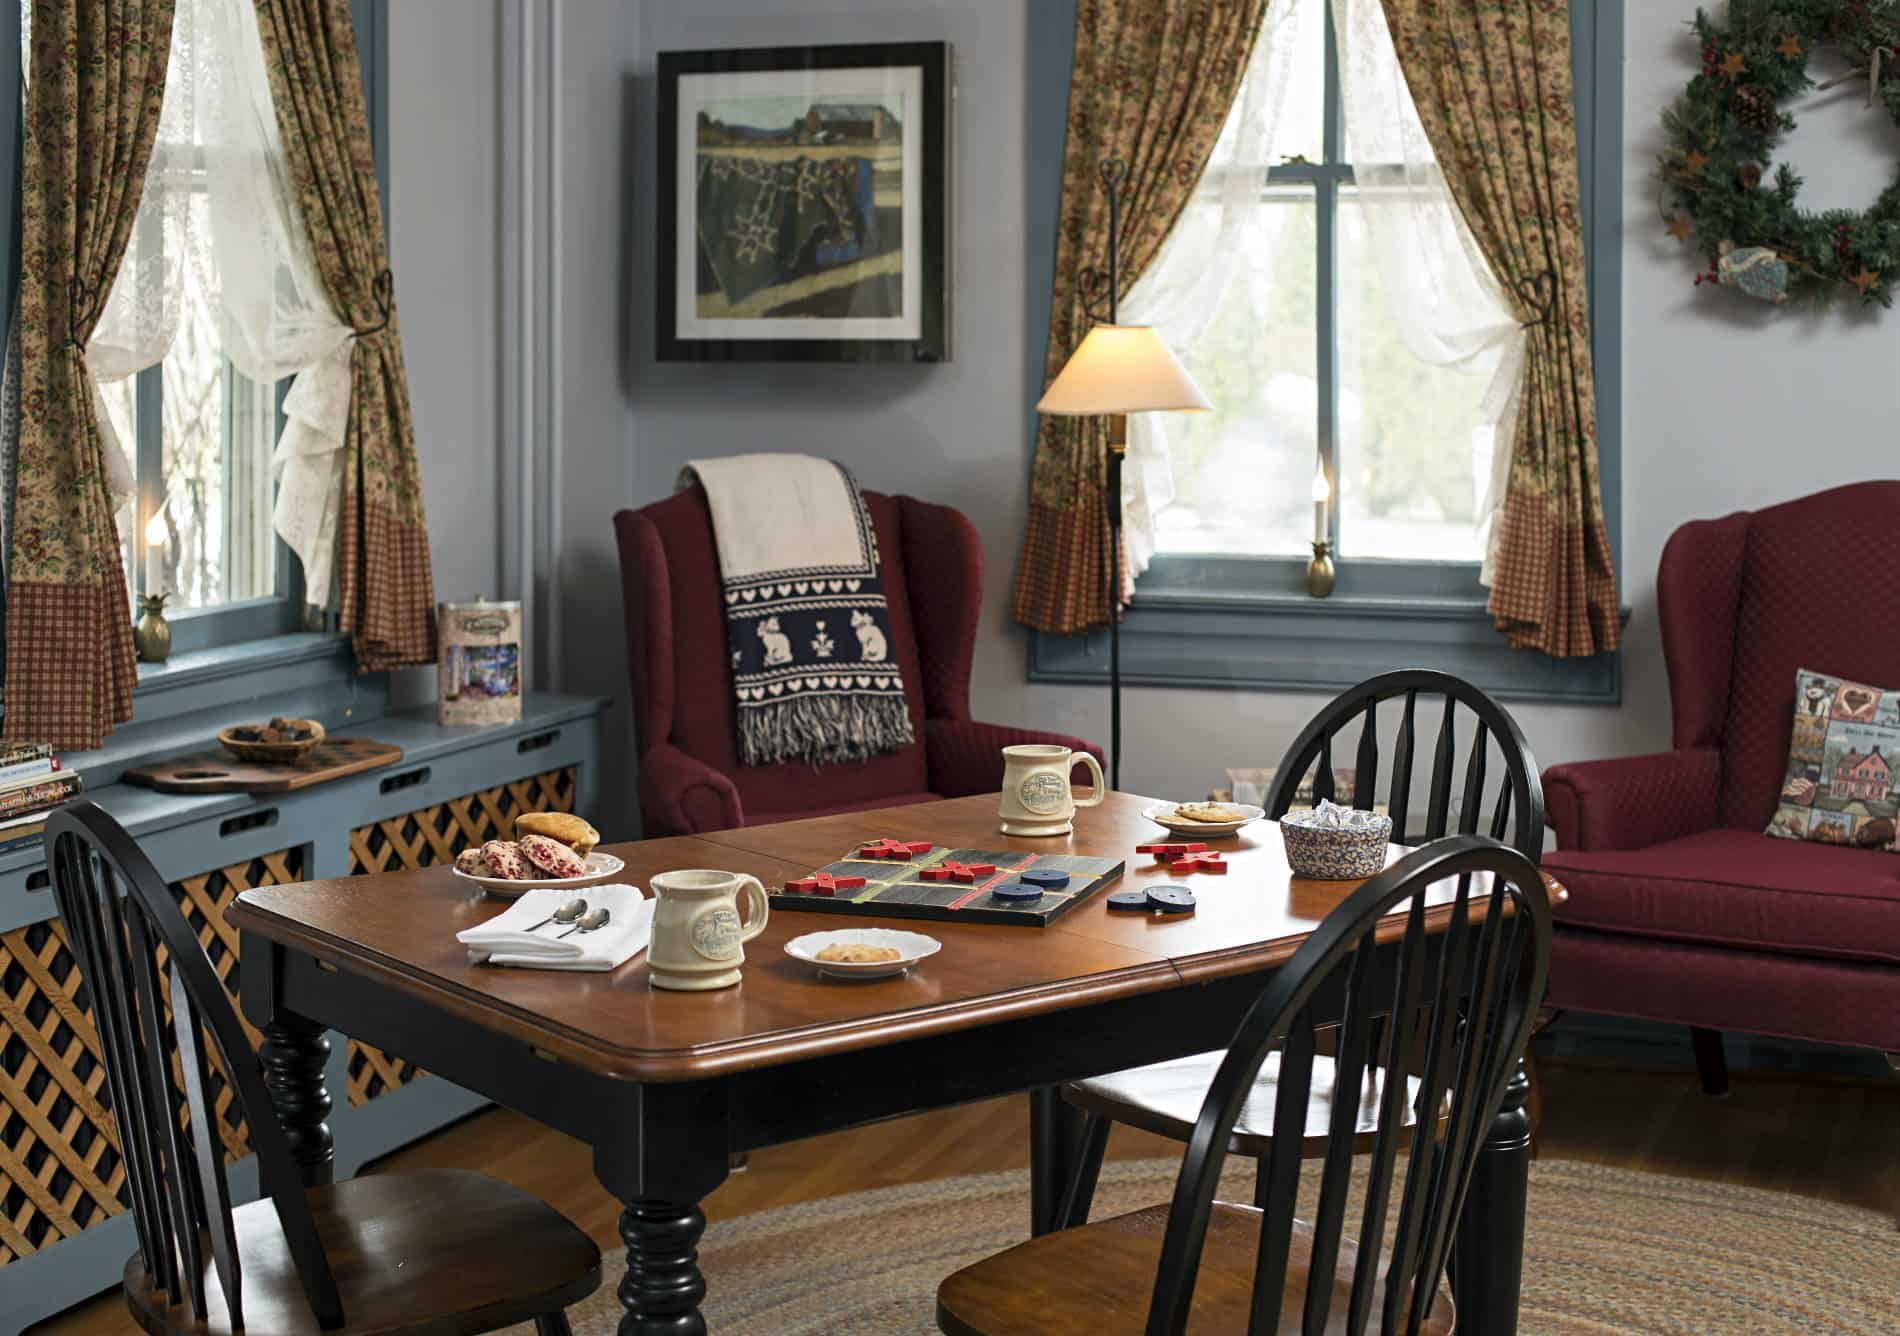 Brown and black game table with two coffee mugs and table games in a room with grey walls and blue trim, against the grey wall are two burgandy chairs